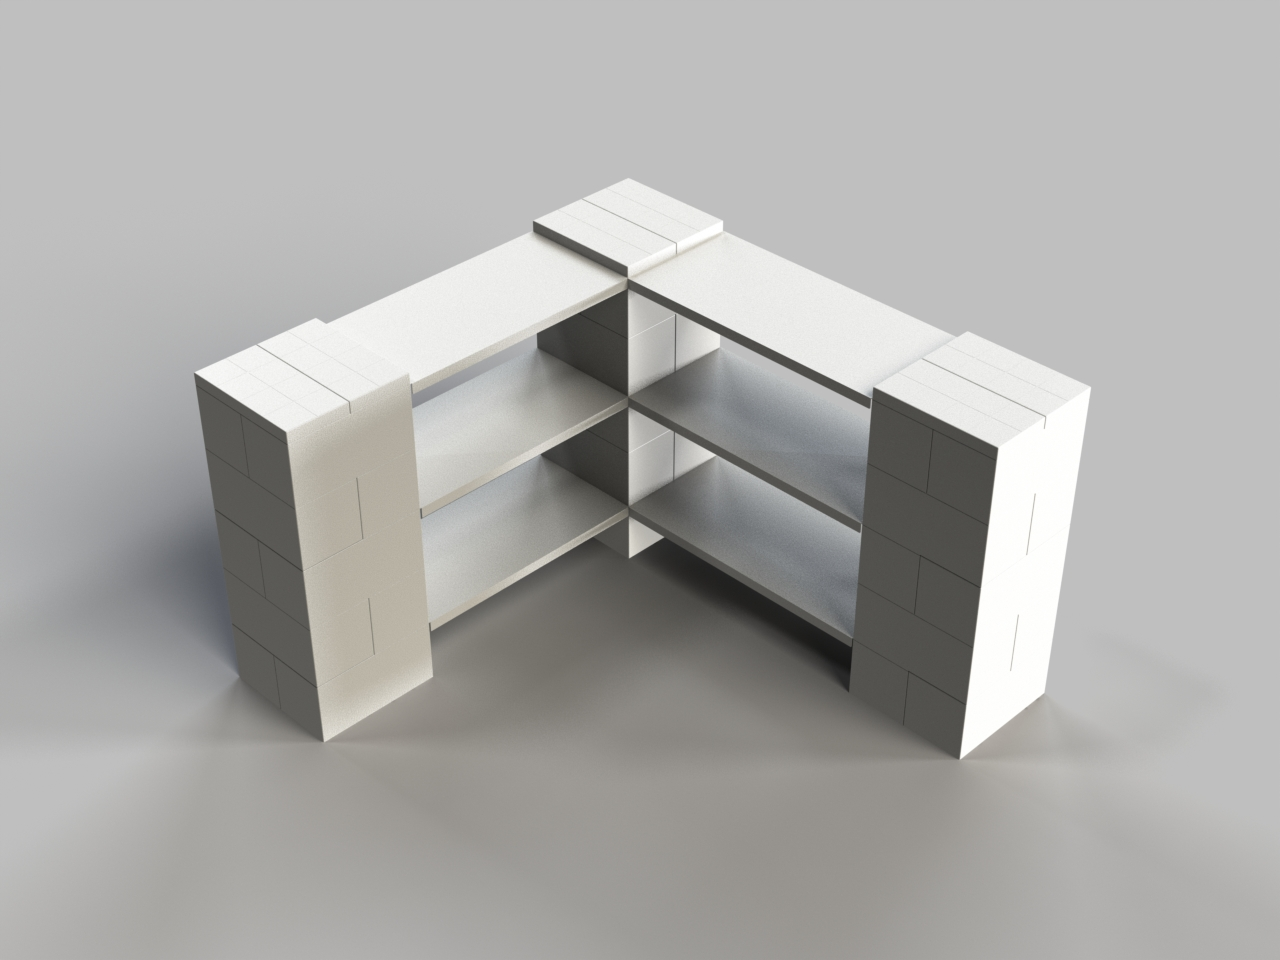 3 Level Corner Shelf A